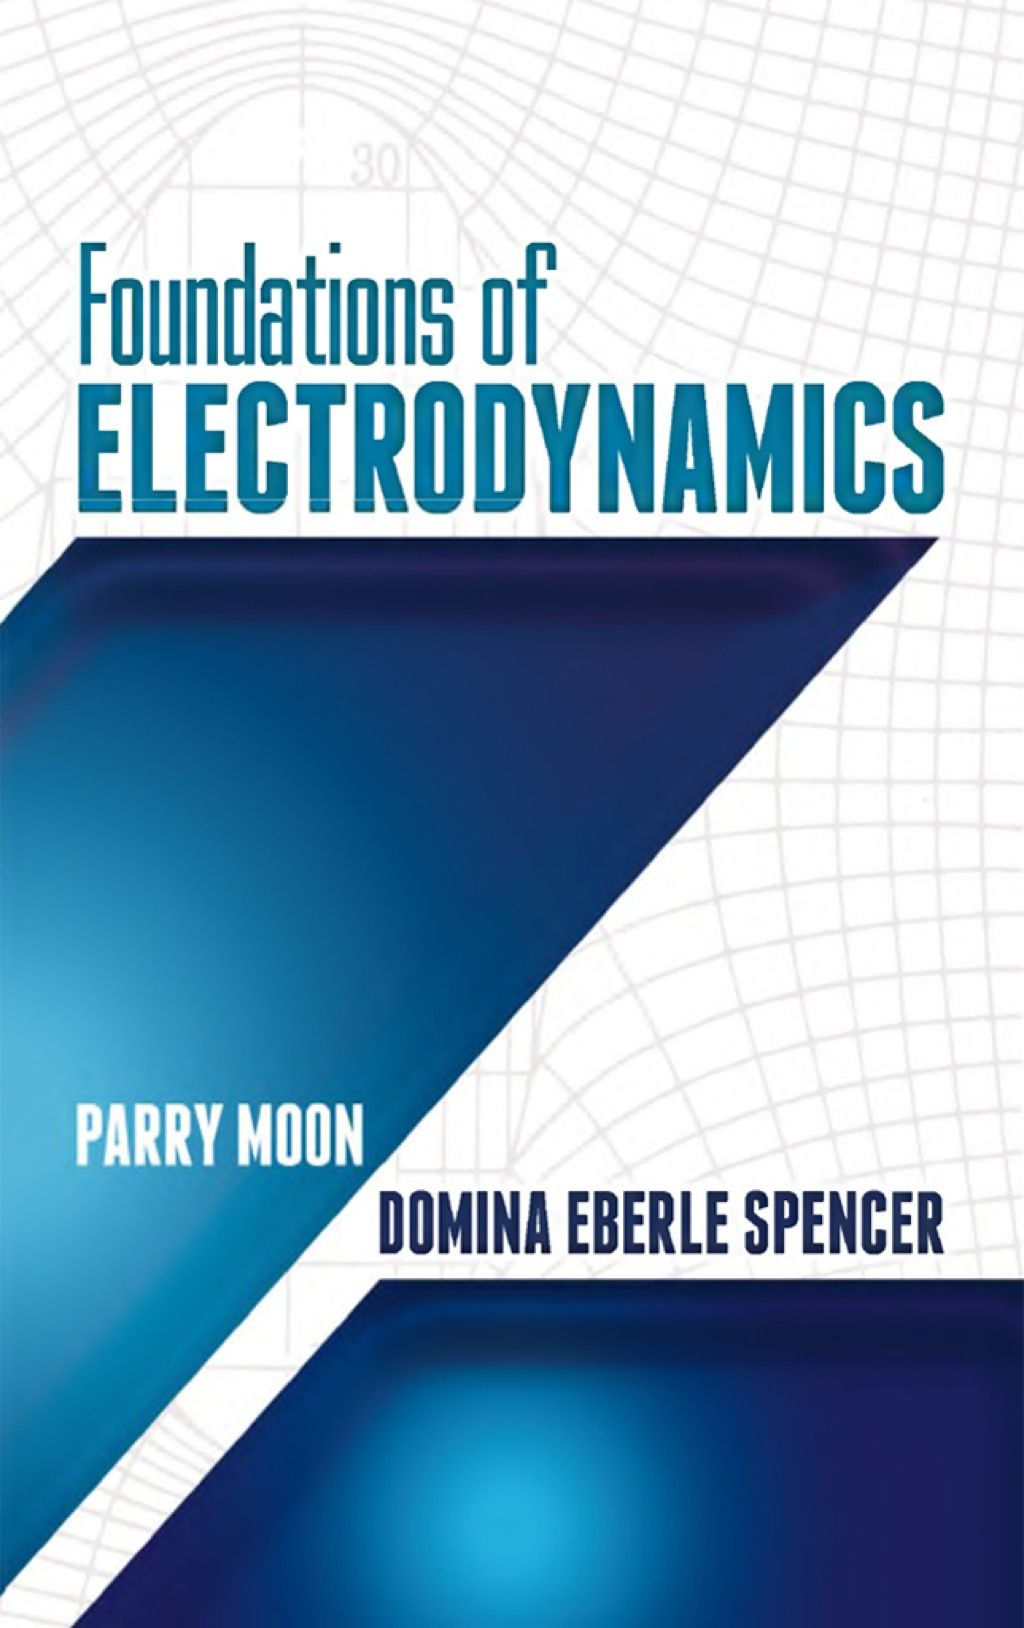 By Parry Moon PRINT ISBN 9780486497037 ETEXT ISBN